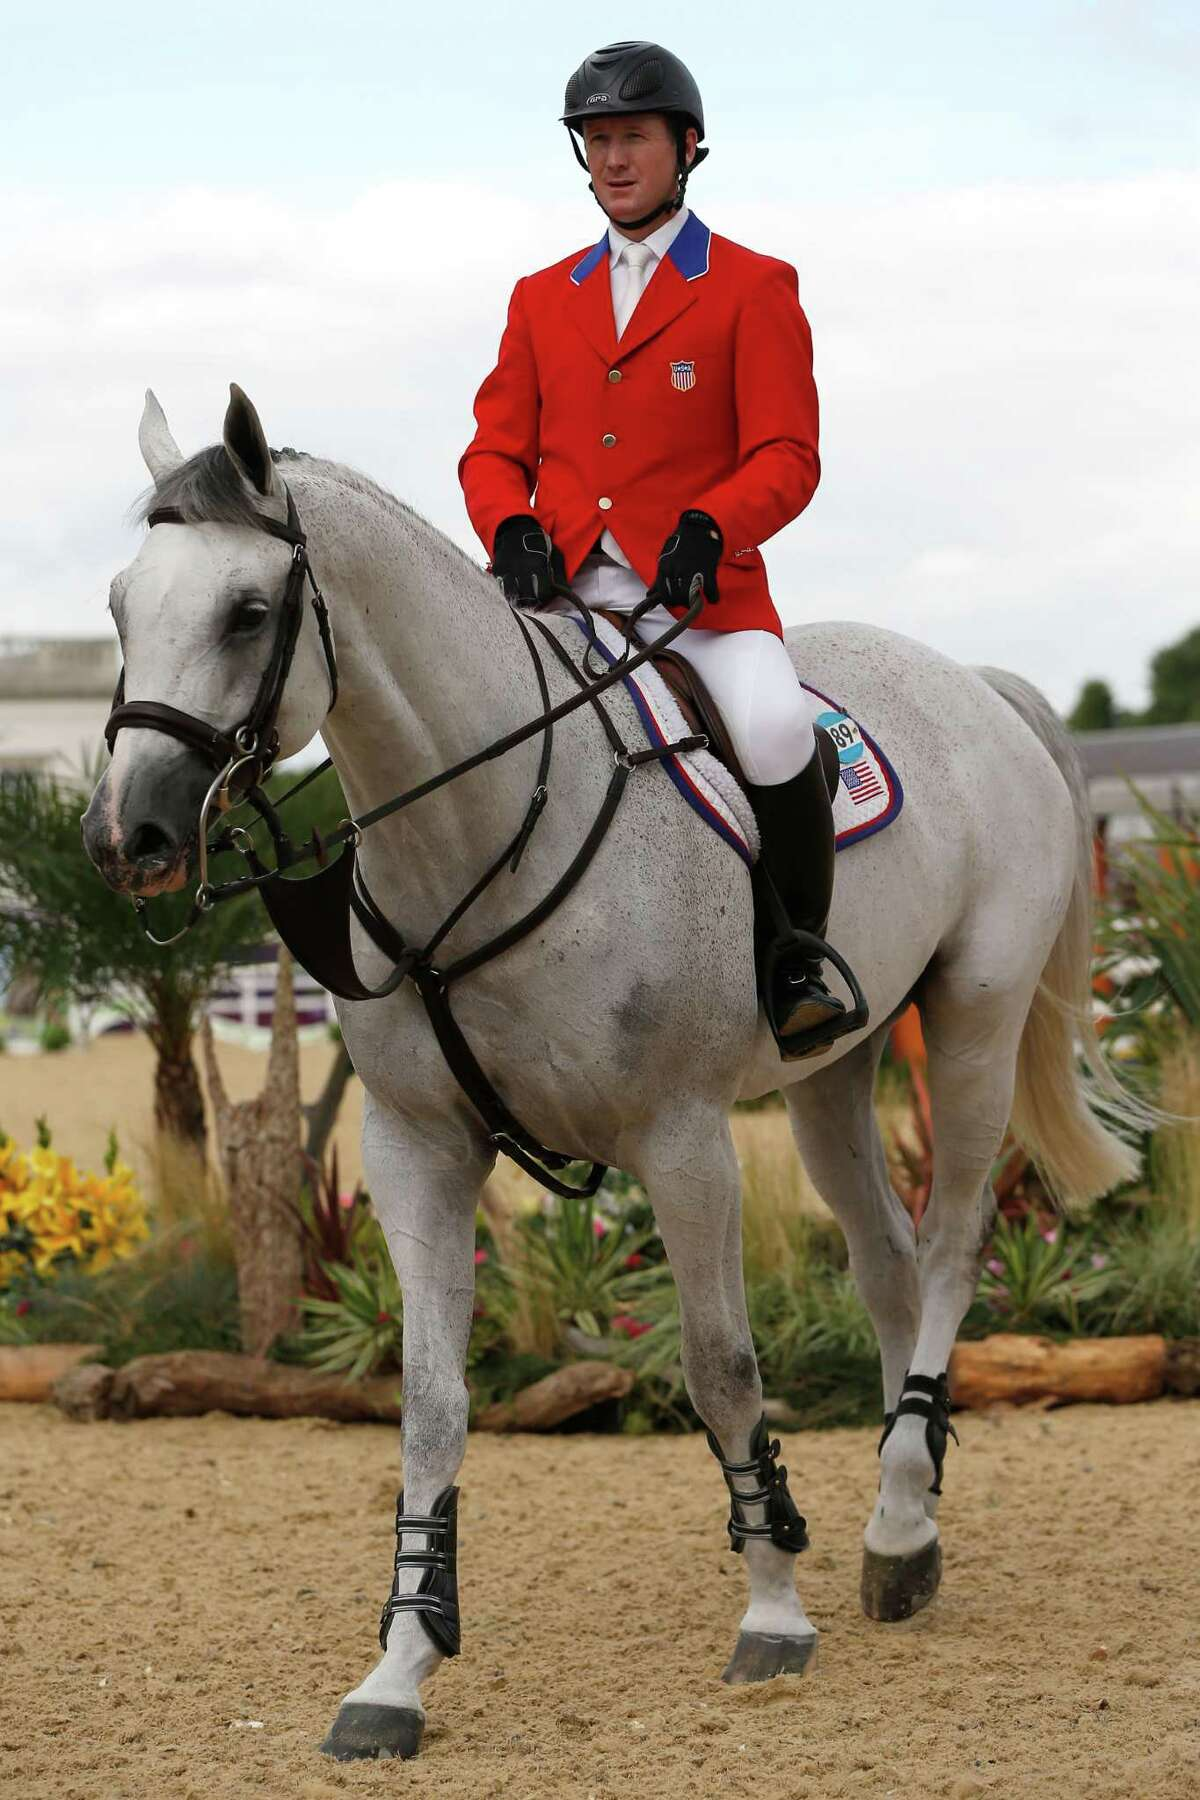 LONDON, ENGLAND - AUG. 08: McLain Ward of the United States Riding Antares competes in the Individual Jumping Equestrian on Day 12 of the London 2012 Olympic Games at Greenwich Park on Aug 8, 2012, in London, England. Ward will be participating in a live question and answer interview series at the New Canaan Mounted Troop this Tuesday, Oct. 8, 2019 in New Canaan, Connecticut. (Photo by Jamie Squire/Getty Images)